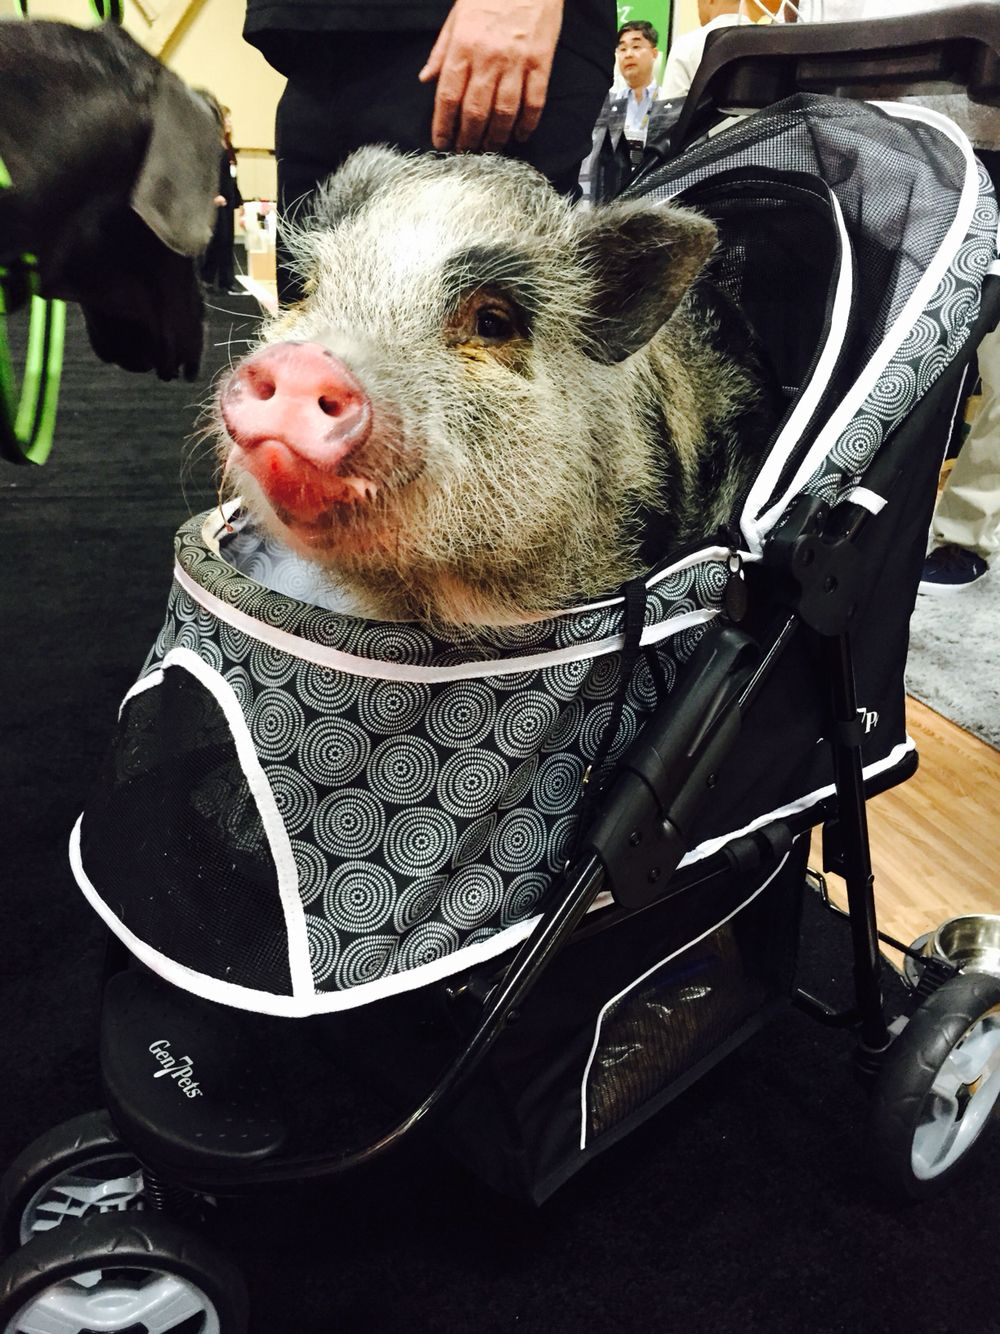 Pig on a stroller Mini pigs, Miniature pigs, Small pigs